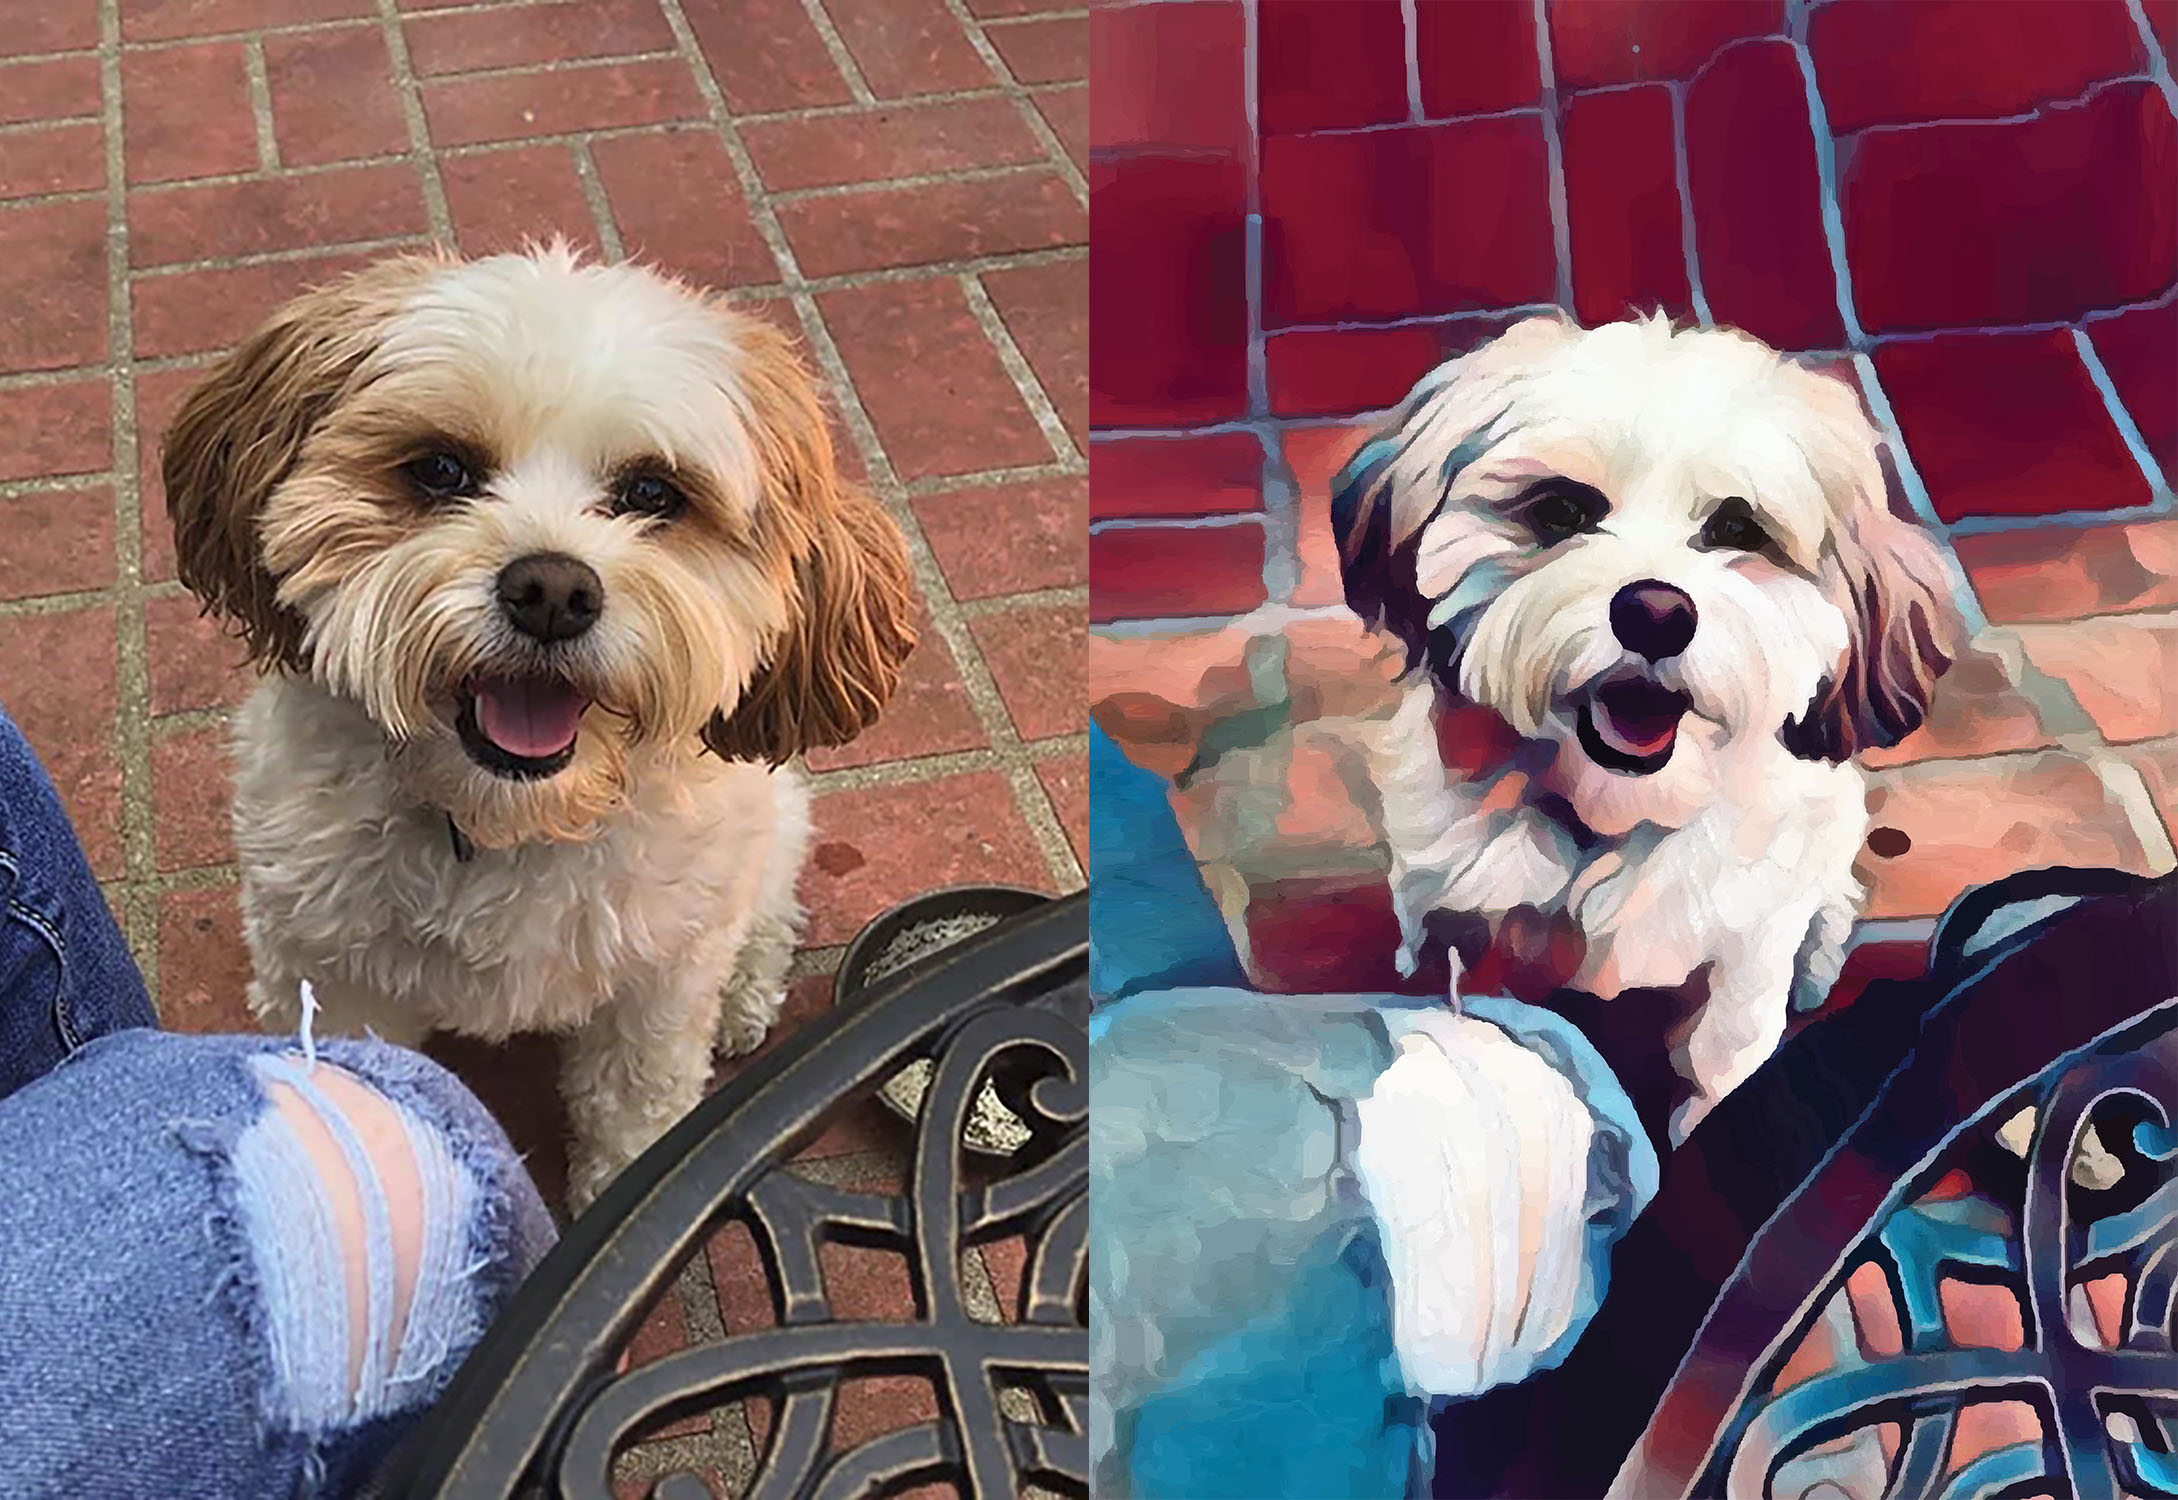 Before and after stylized image of a dog standing next to a wrought iron table